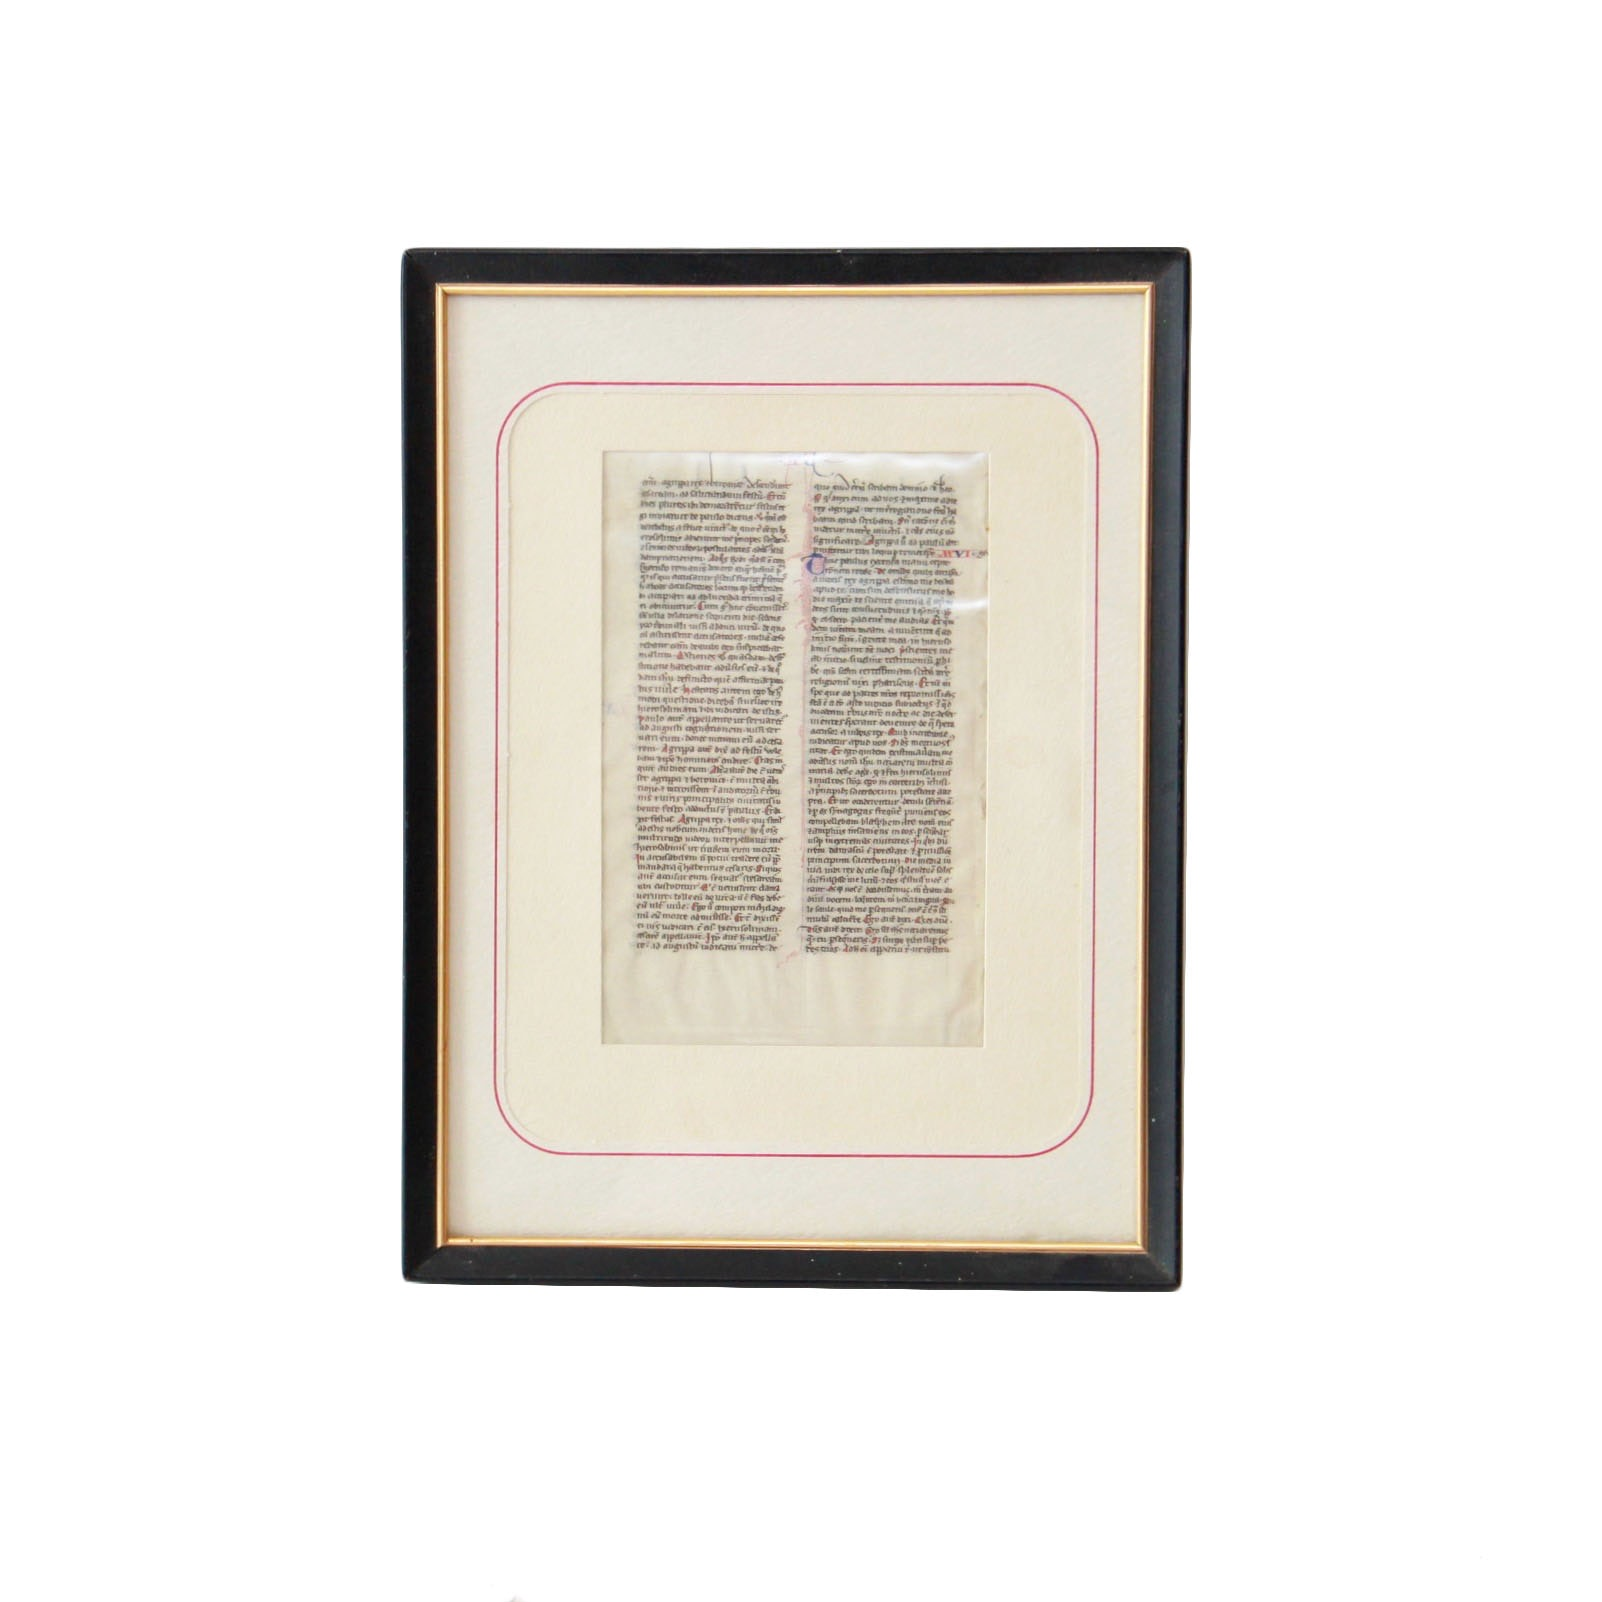 """Framed Medieval Manuscript Leaf and 16th Century Hand-Illuminated Printed Pages From Gerard Jansen's """"Ten Treaties Concerning the [Catholic] Church"""""""